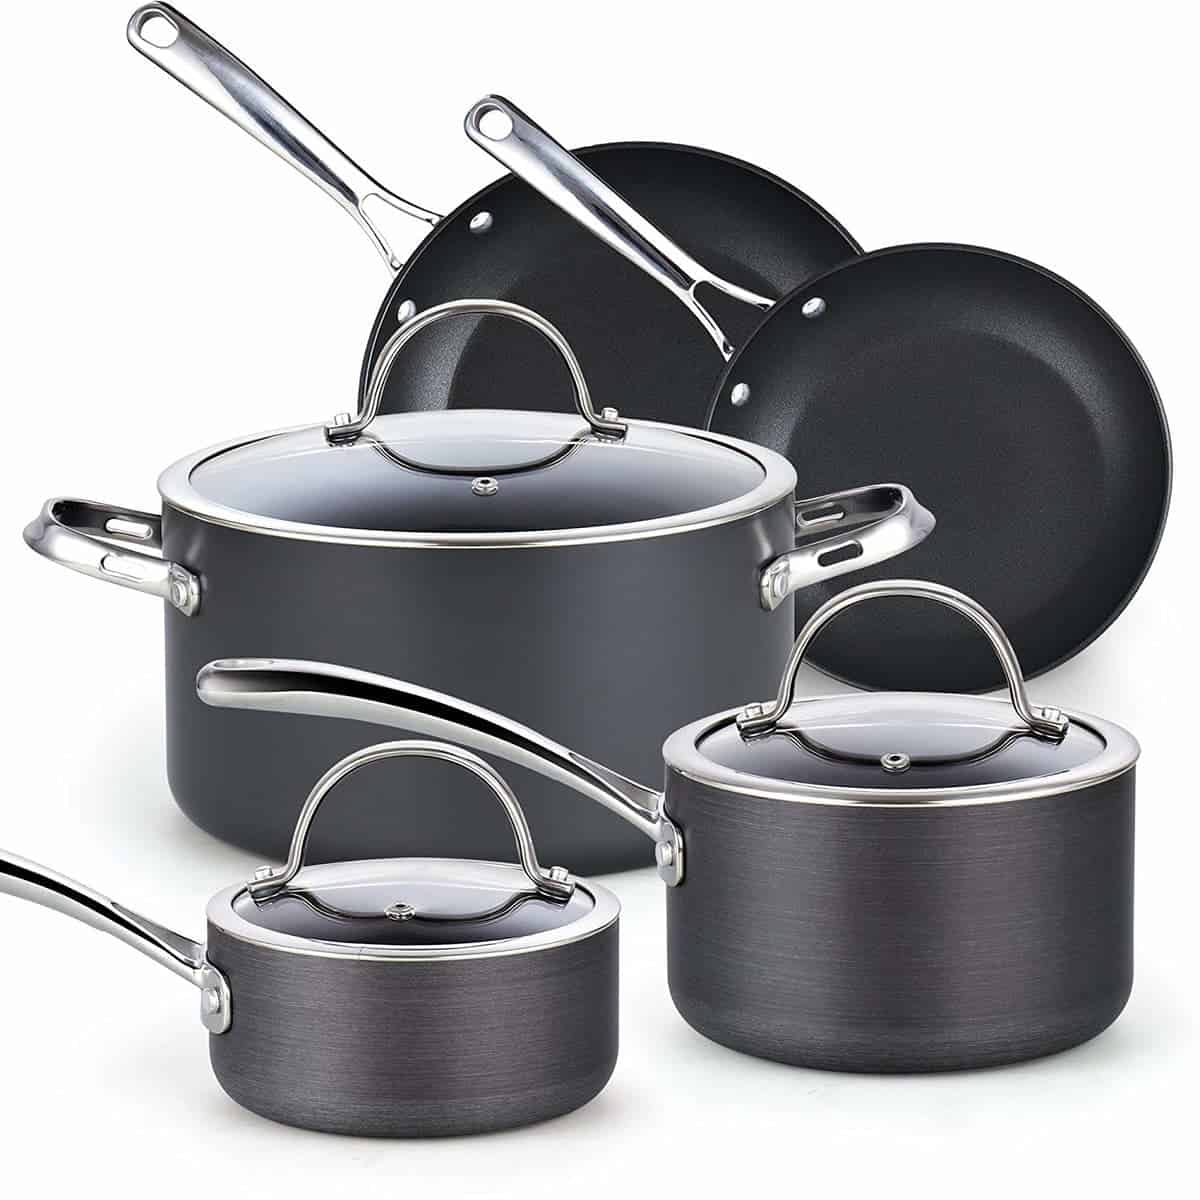 Cooks Standard Nonstick Hard Anodized Cookware Set, Black